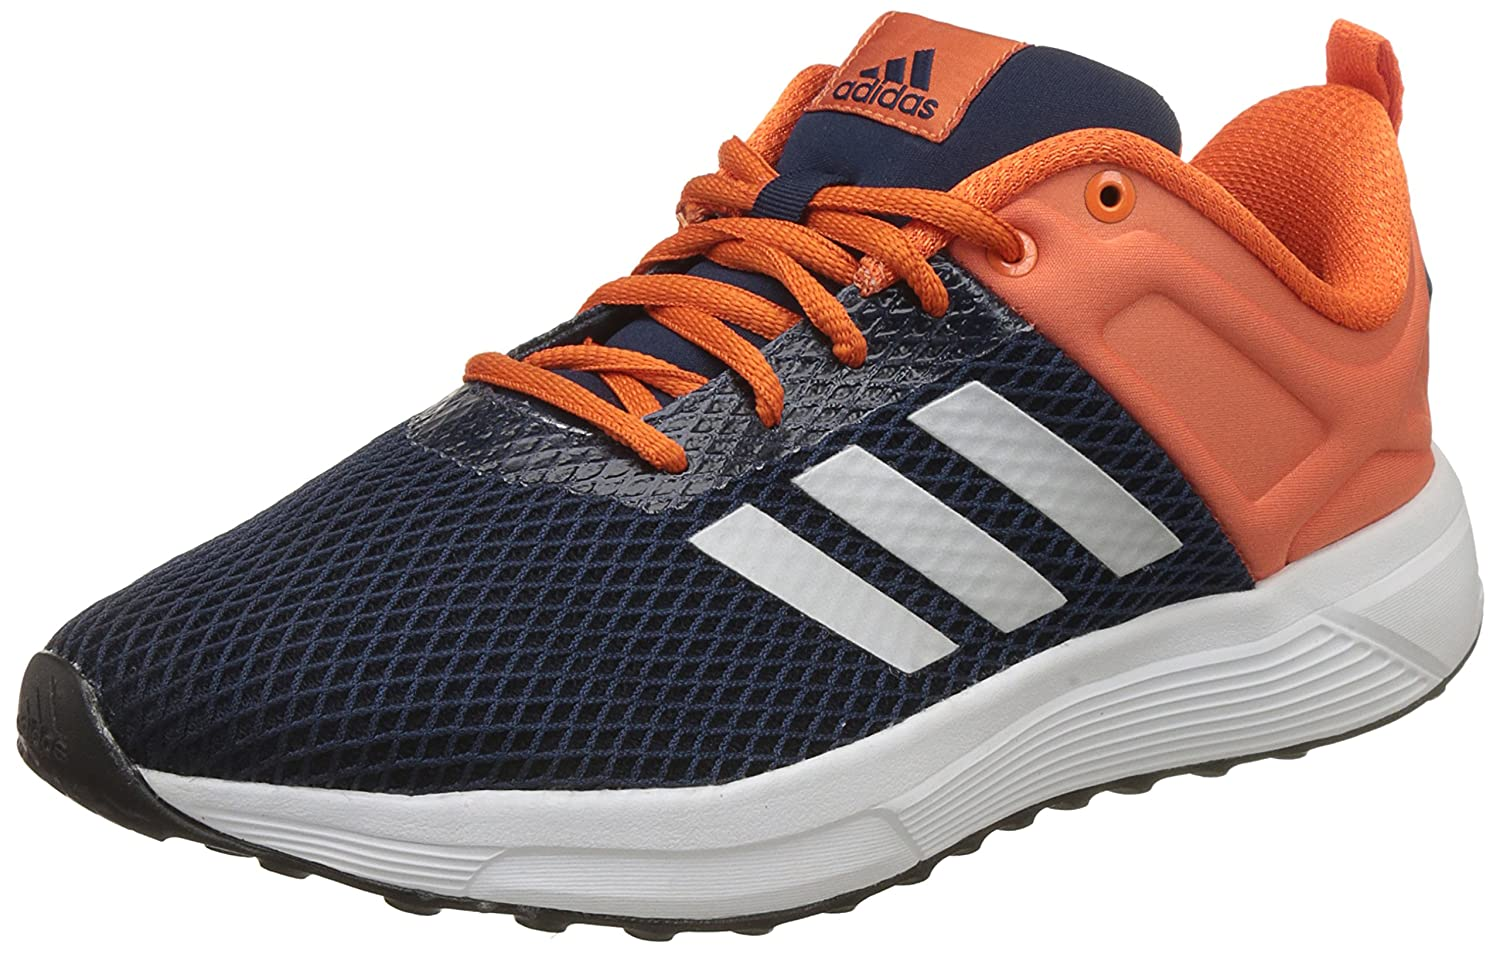 the latest 69ead d51cb Adidas Mens Helkin 2.1 M ConavySilvmtEneora Running Shoes - 12 UKIndia  (47.33 EU) Buy Online at Low Prices in India - Amazon.in